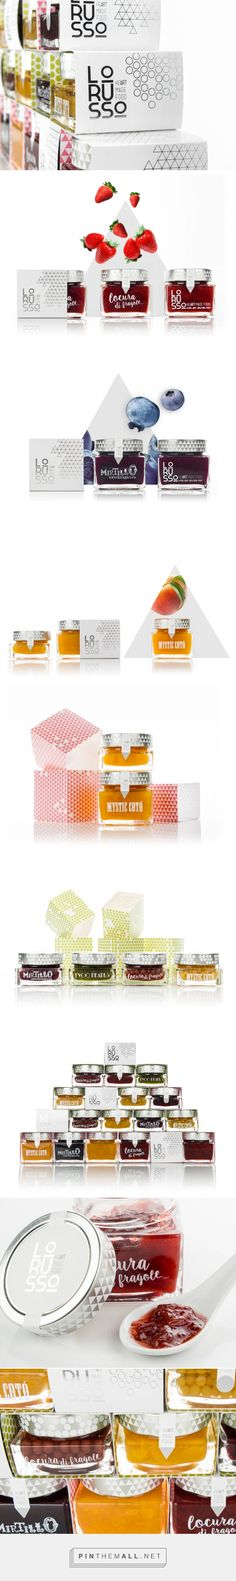 Lorusso Hearth Made Food via Cabello x Mure curated by Packaging Diva PD. Nice selection of gourmet patterned food packaging.